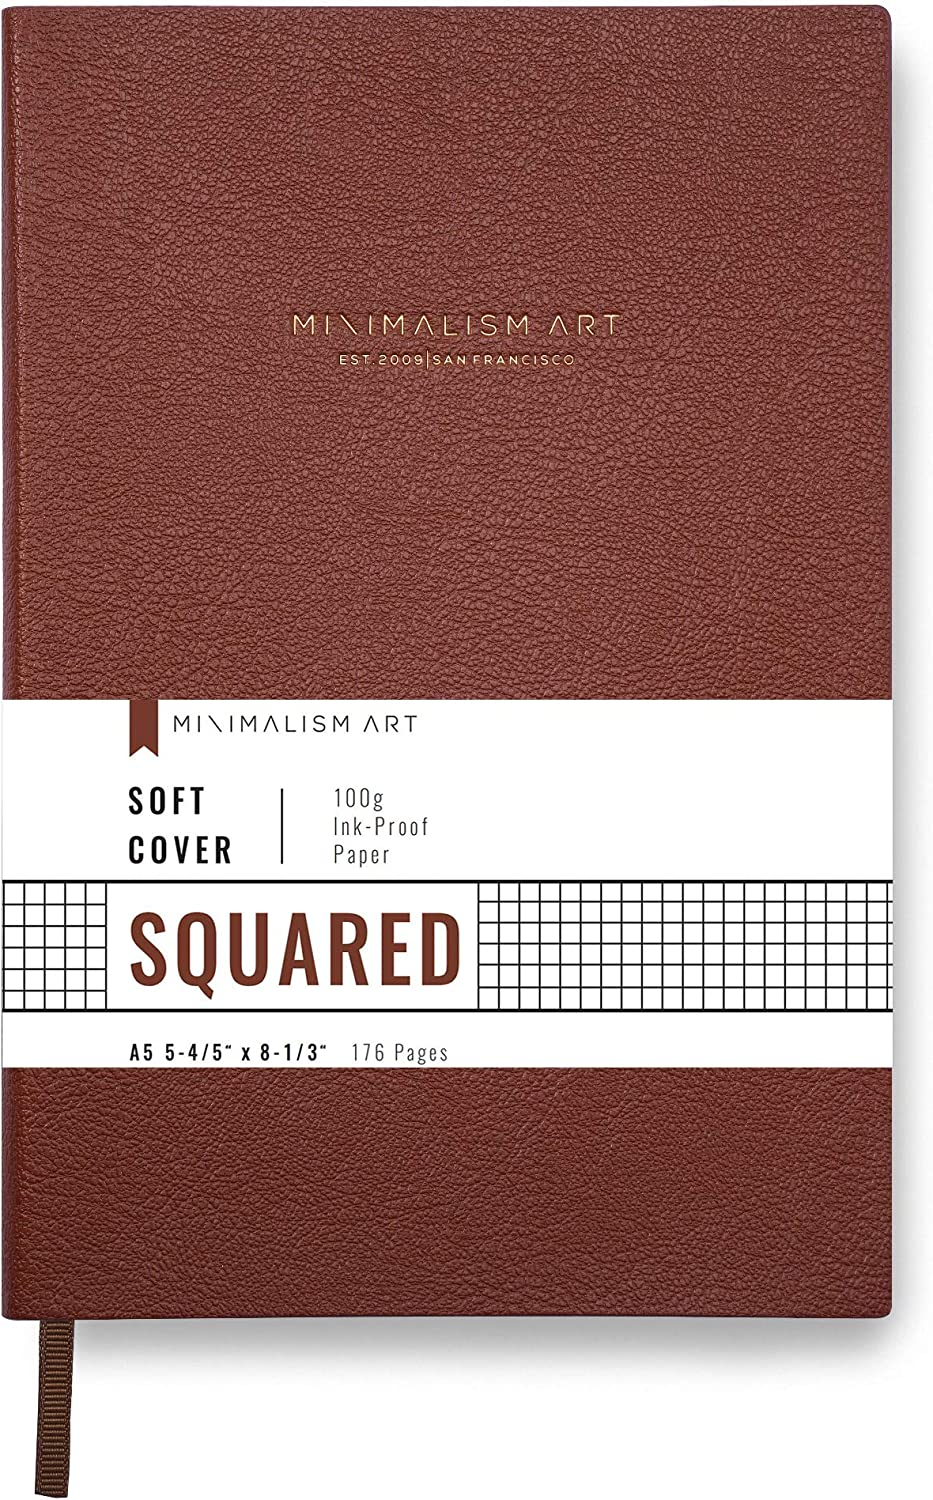 Minimalism specialty shop Art Classic Soft Cover Notebook Medium Journal Ranking TOP3 Size